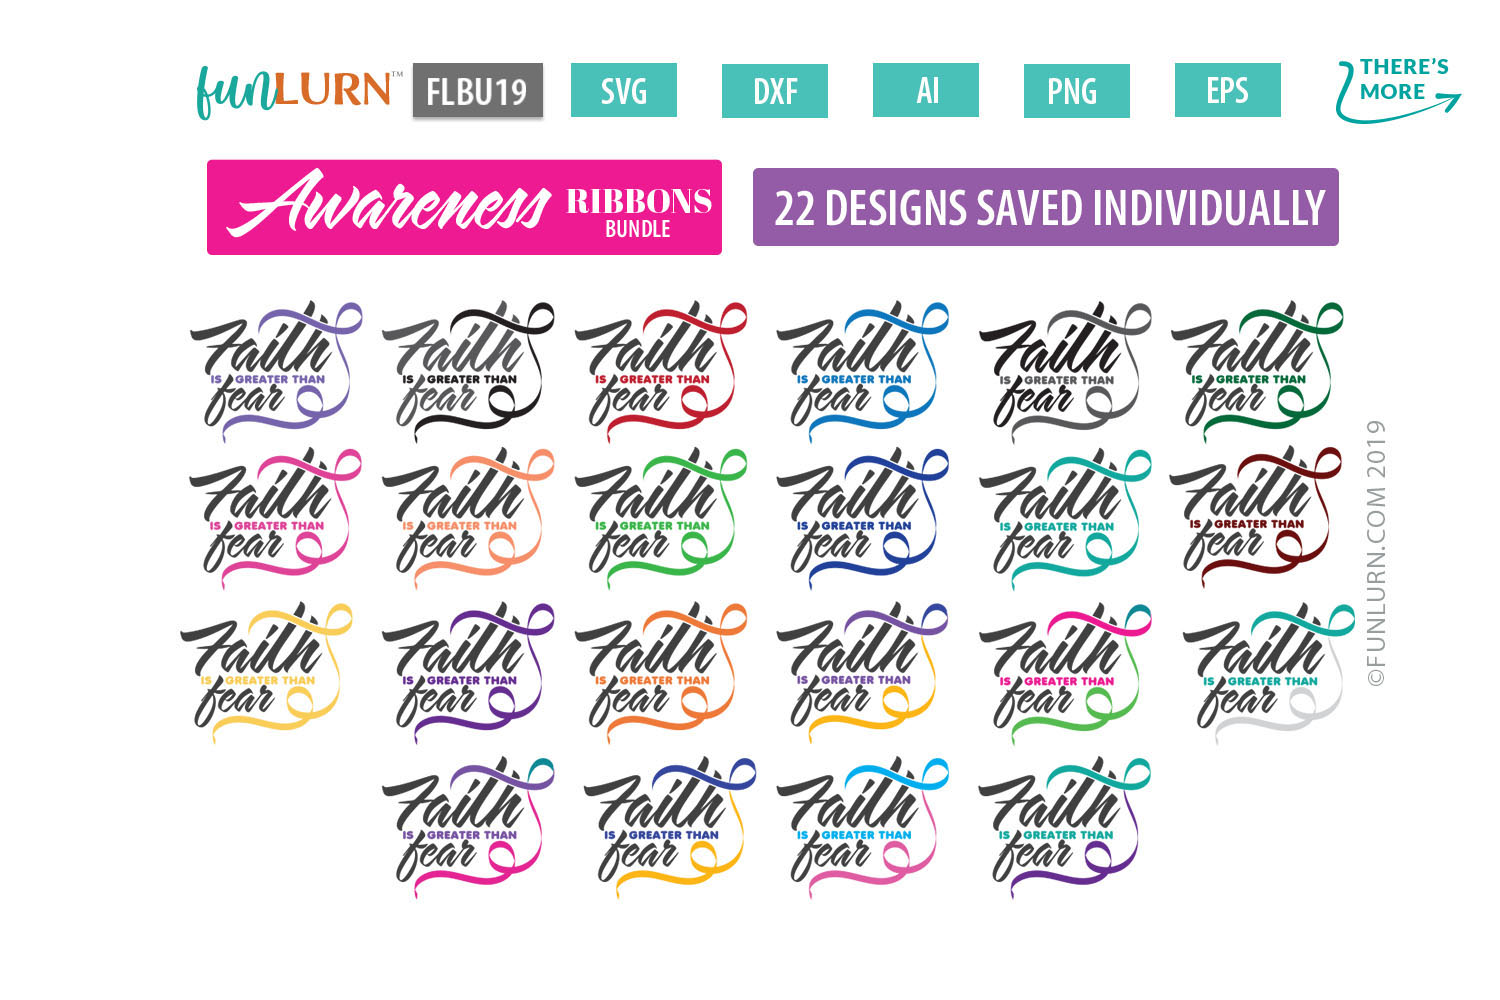 Faith is Greater Than Fear Ribbon Awareness SVG Bundle example image 1